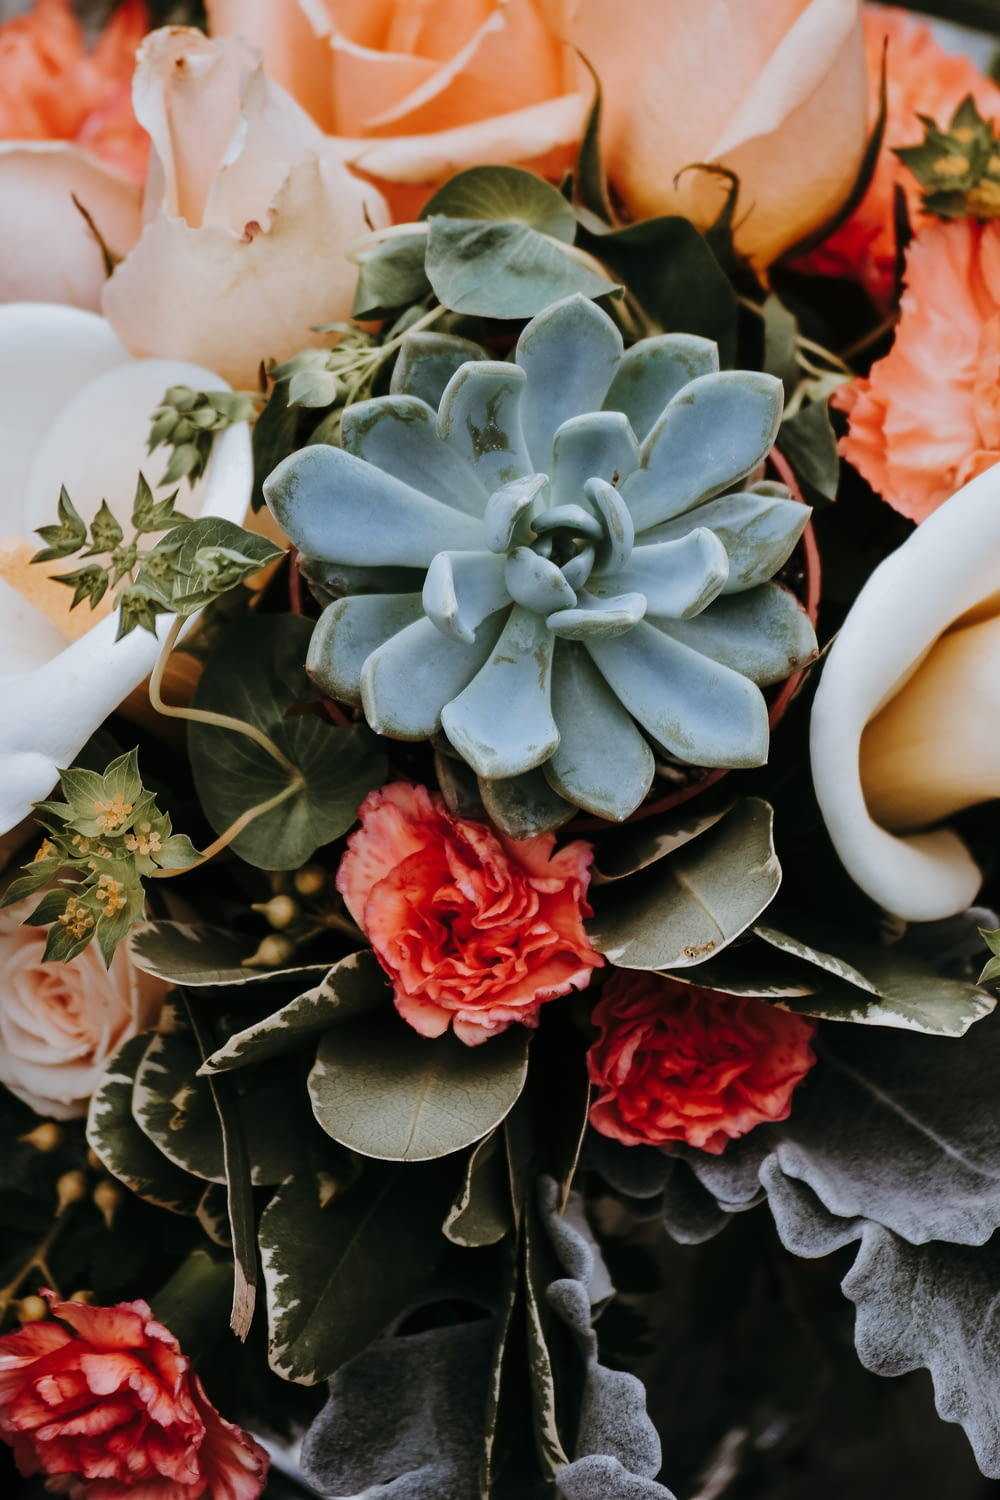 succulent plants and pink roses